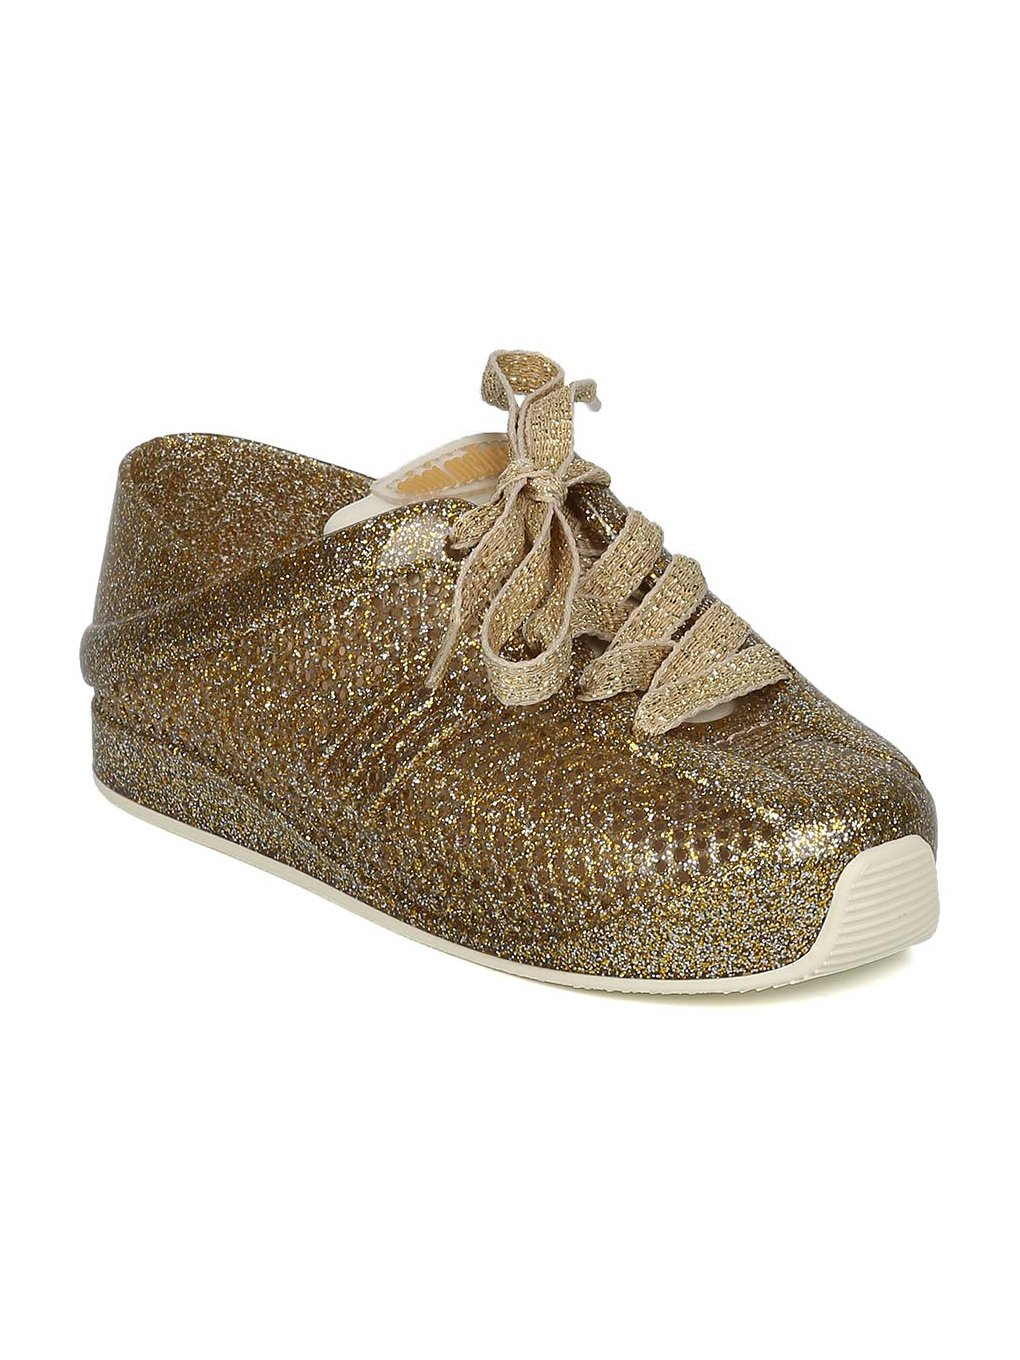 Melissa Mini Mini Love System PVC Perforated Lace Up Sneaker HC08 - Gold Glass (Size: Toddler 5)